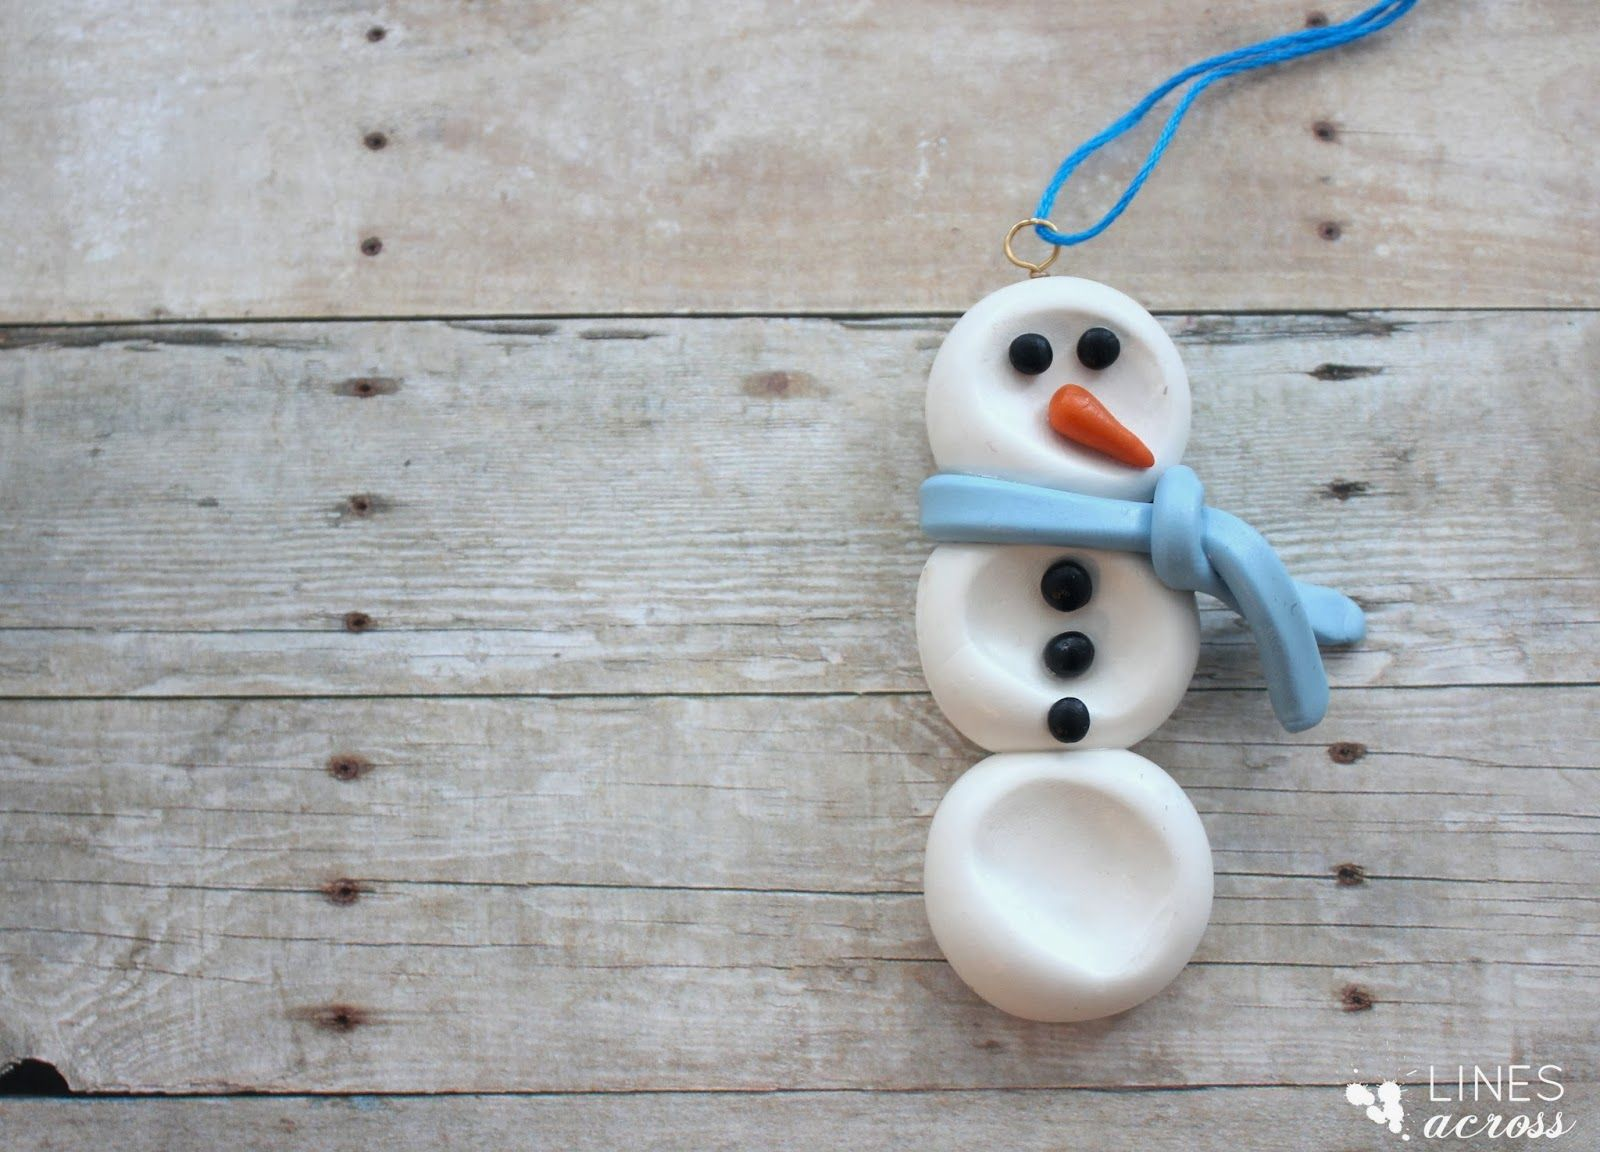 Share Tweet 1 Mail Christmas Ornaments Are One Of My Favorite Things In The World To Make There Are Kids Christmas Kids Ornaments Christmas Crafts For Kids